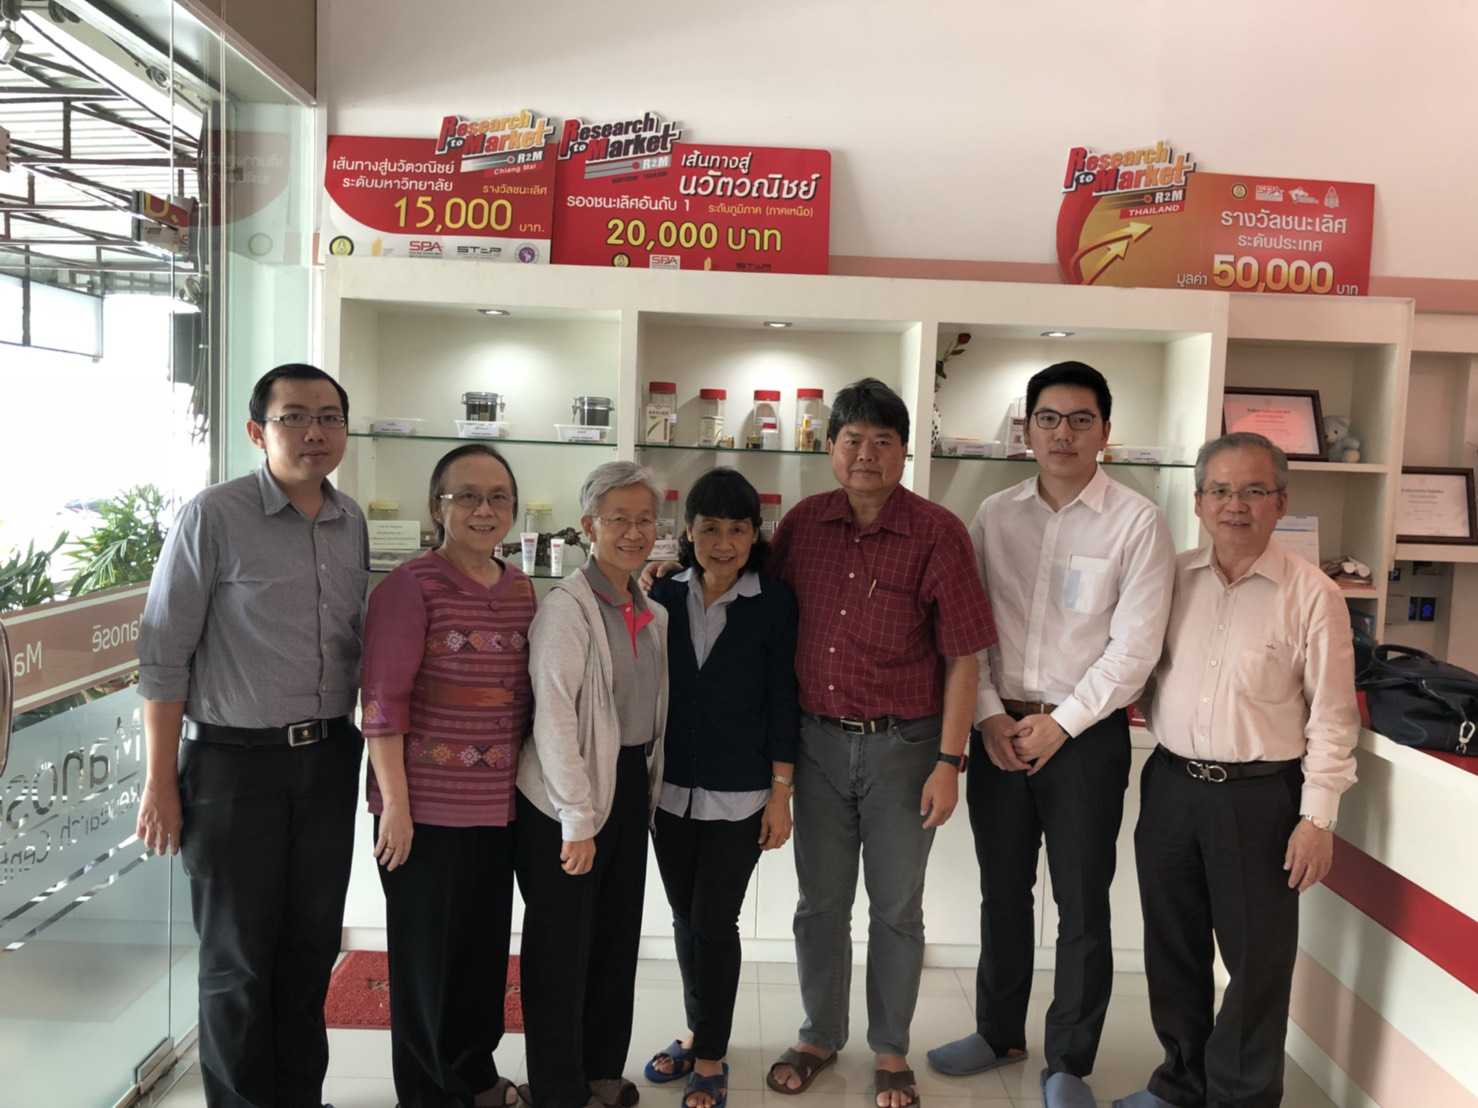 Staffs from Thailand Research Fund (TRF) visited Manose Health and Beauty Research Center